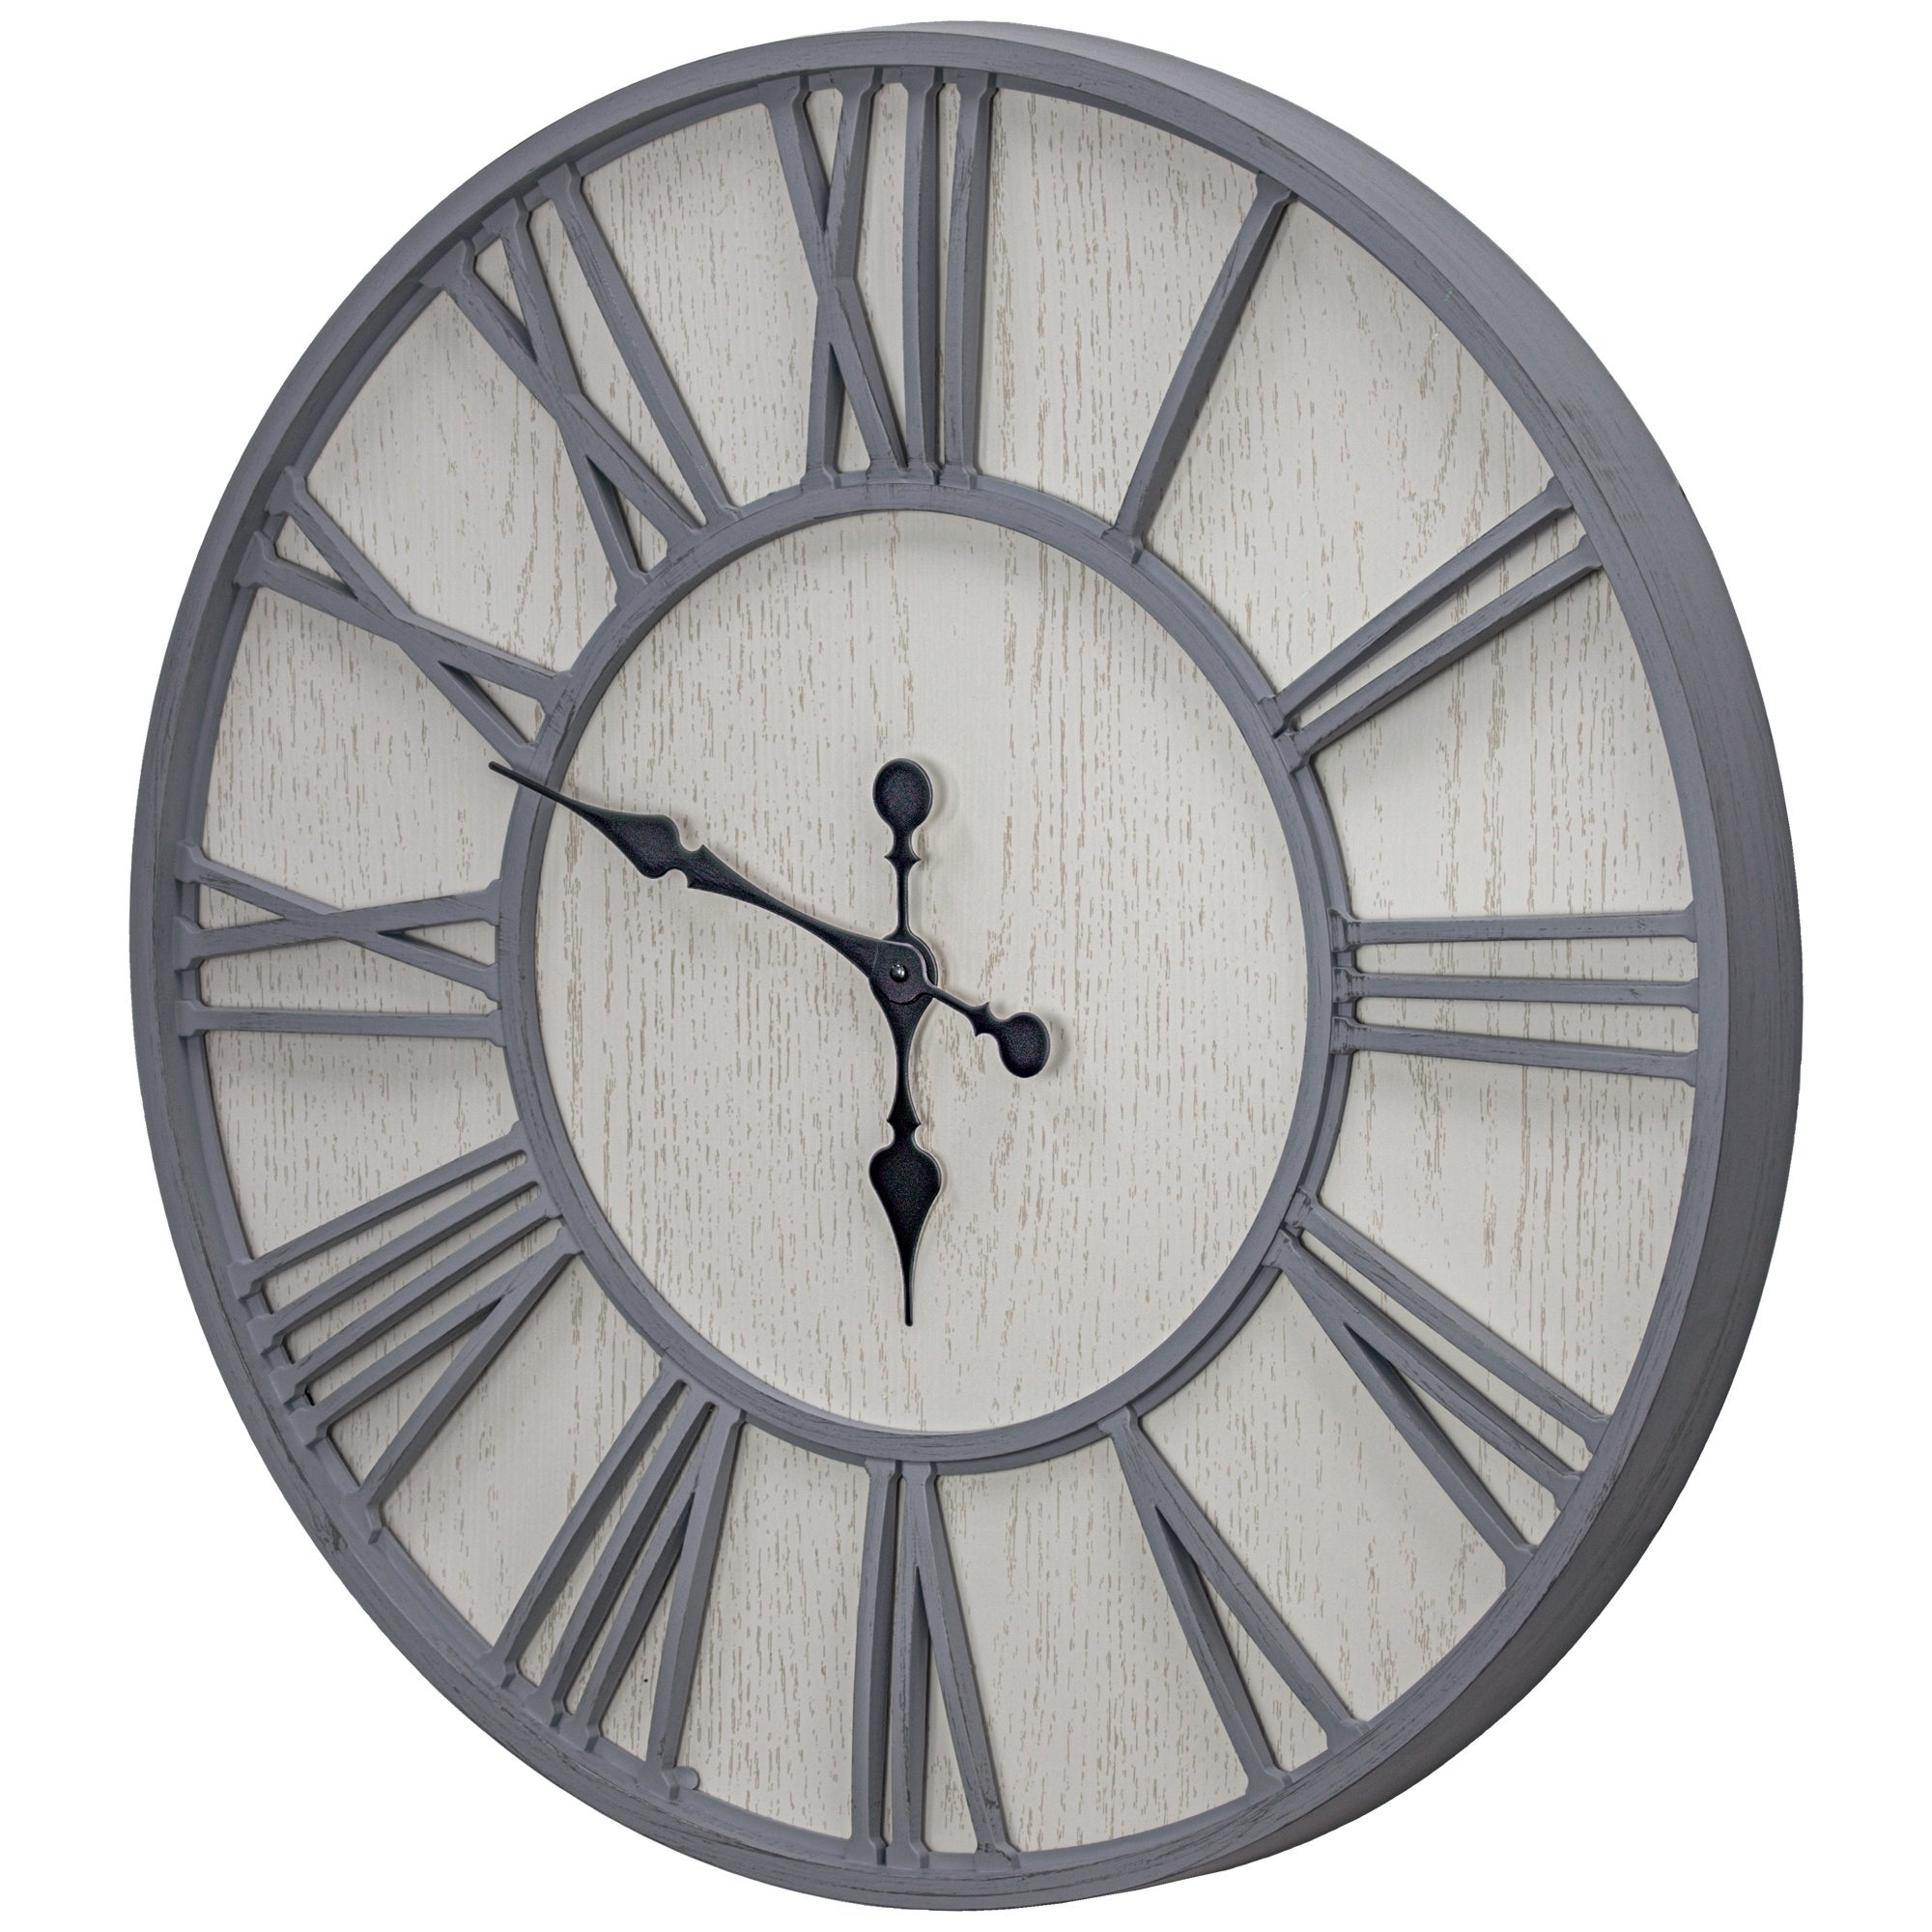 Mdf And Plastic Oversized Wall Clock Whitewashed 30 Overstock 30250866